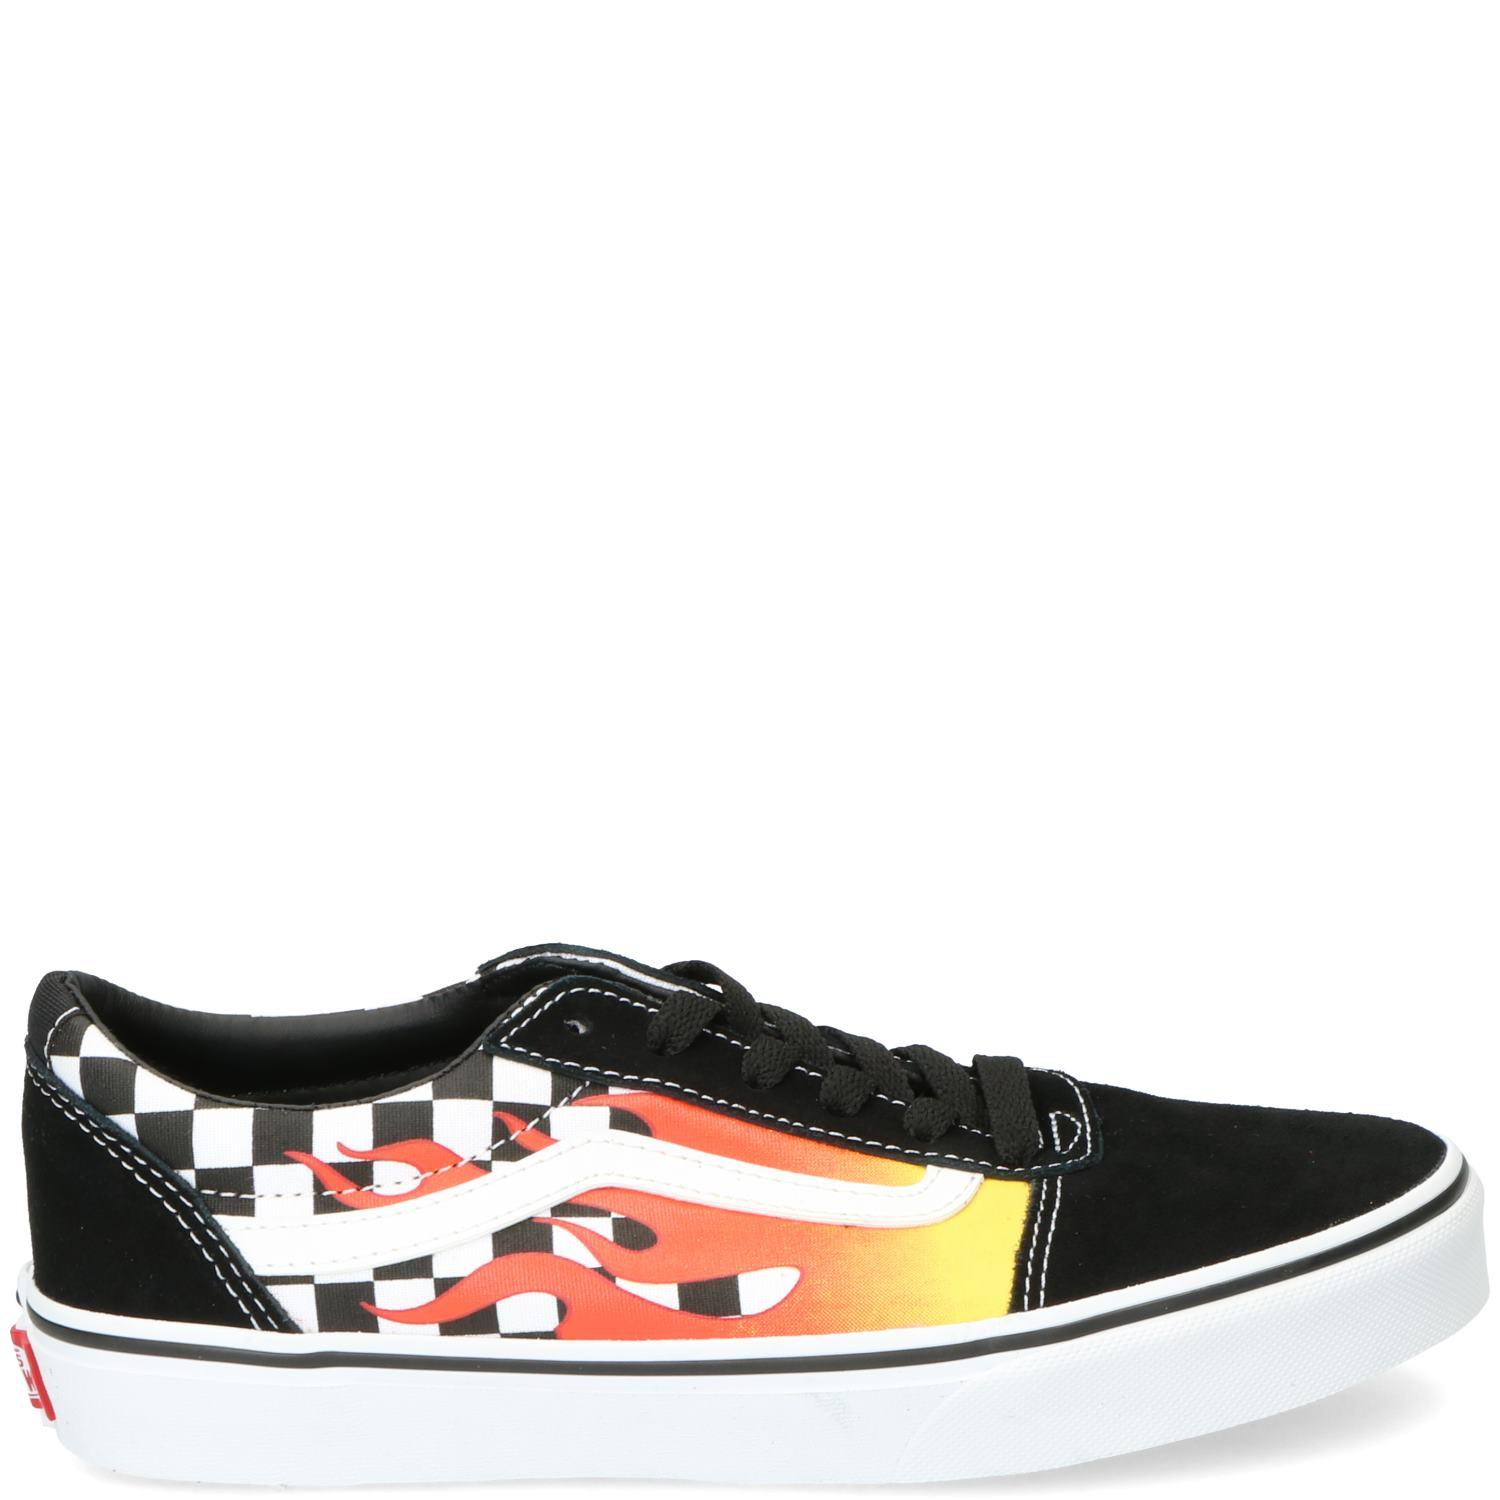 Vans Checker Veterschoen Jongens Zwart